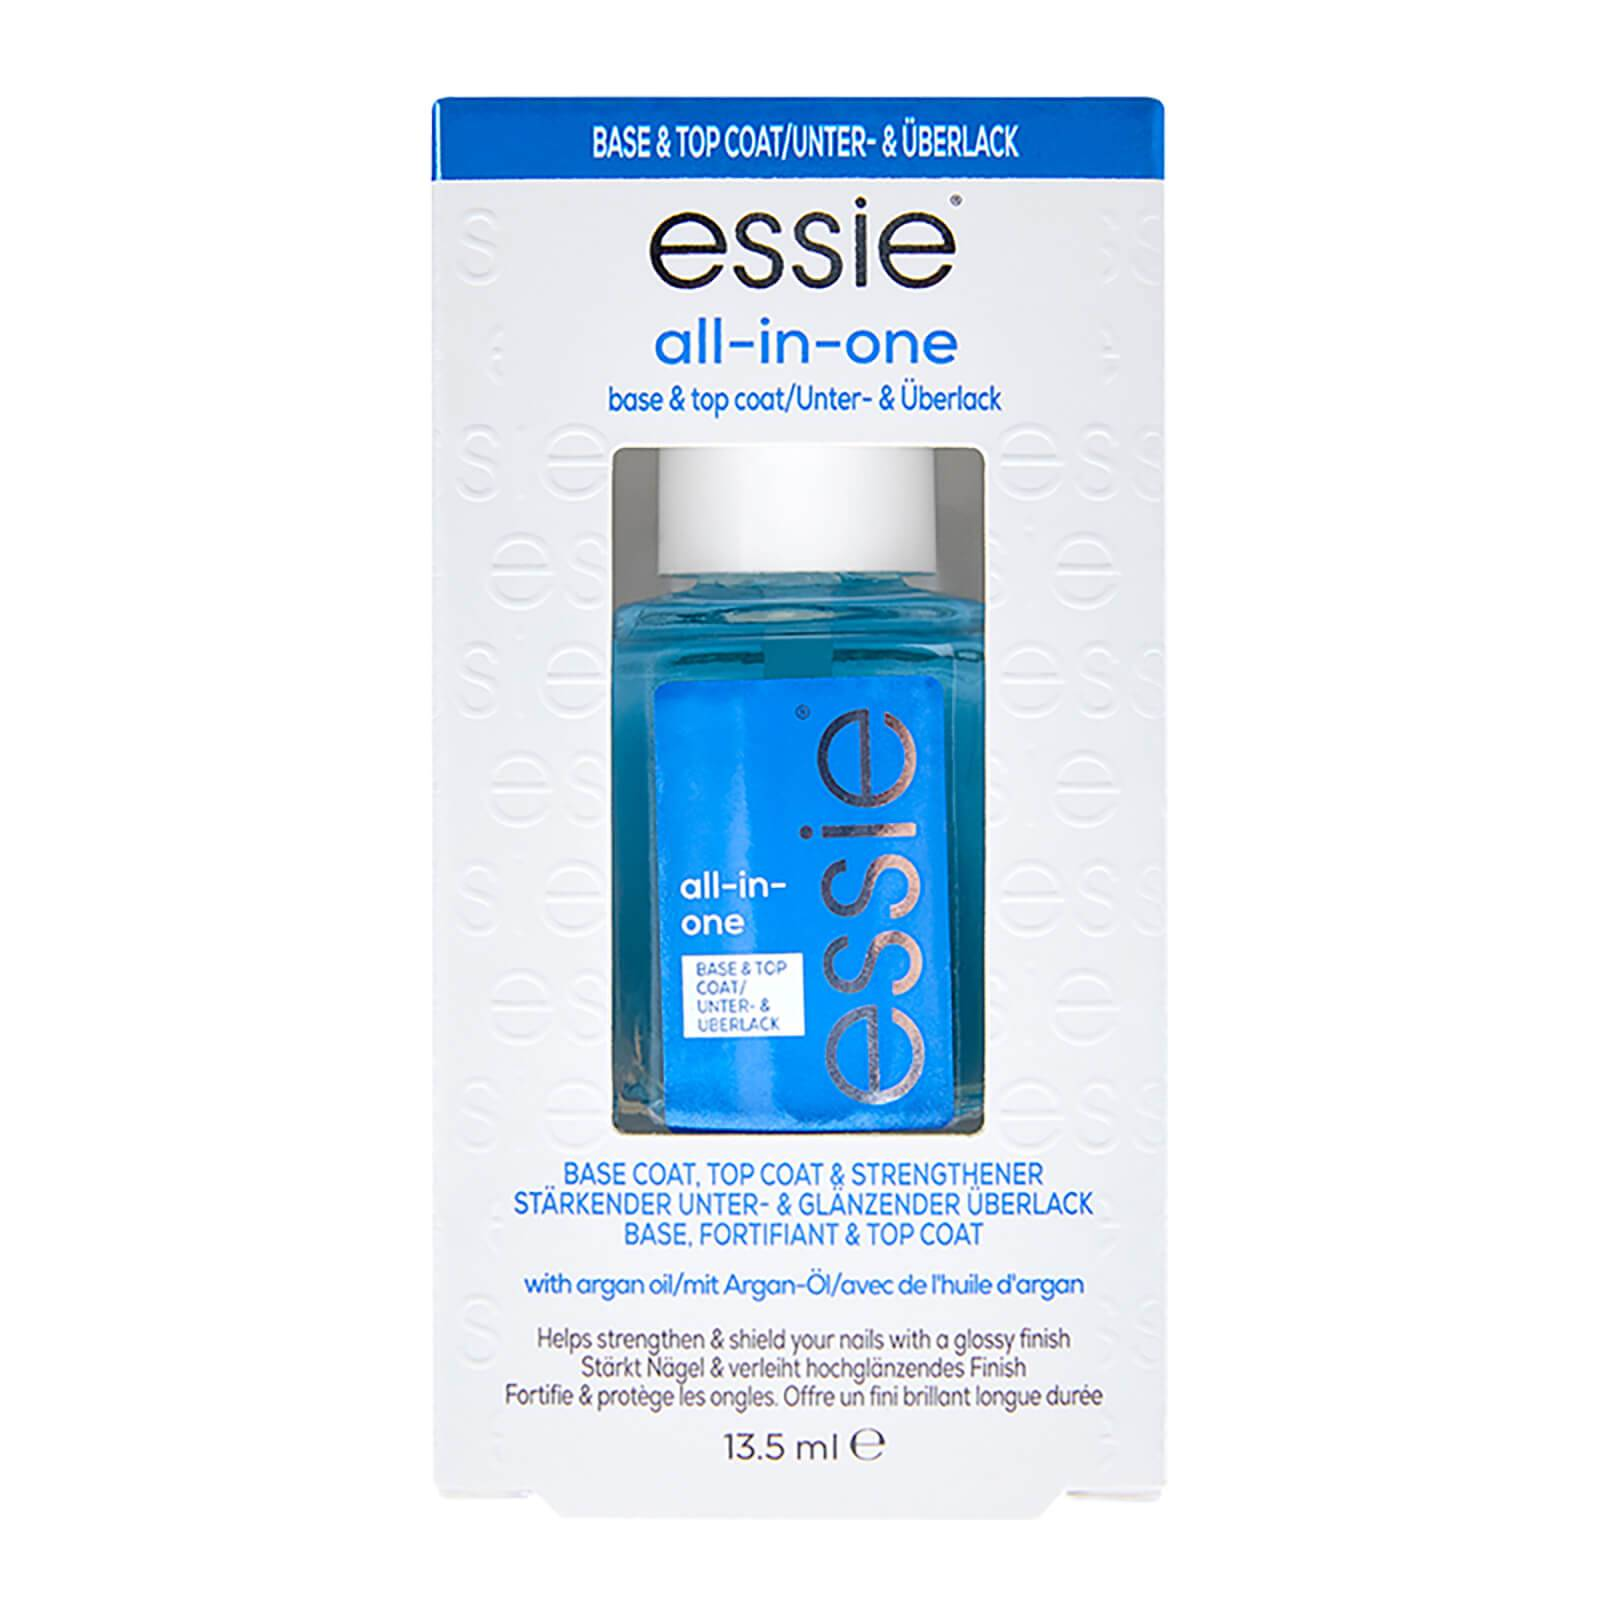 essie Base & Top Coat All-in-One essie